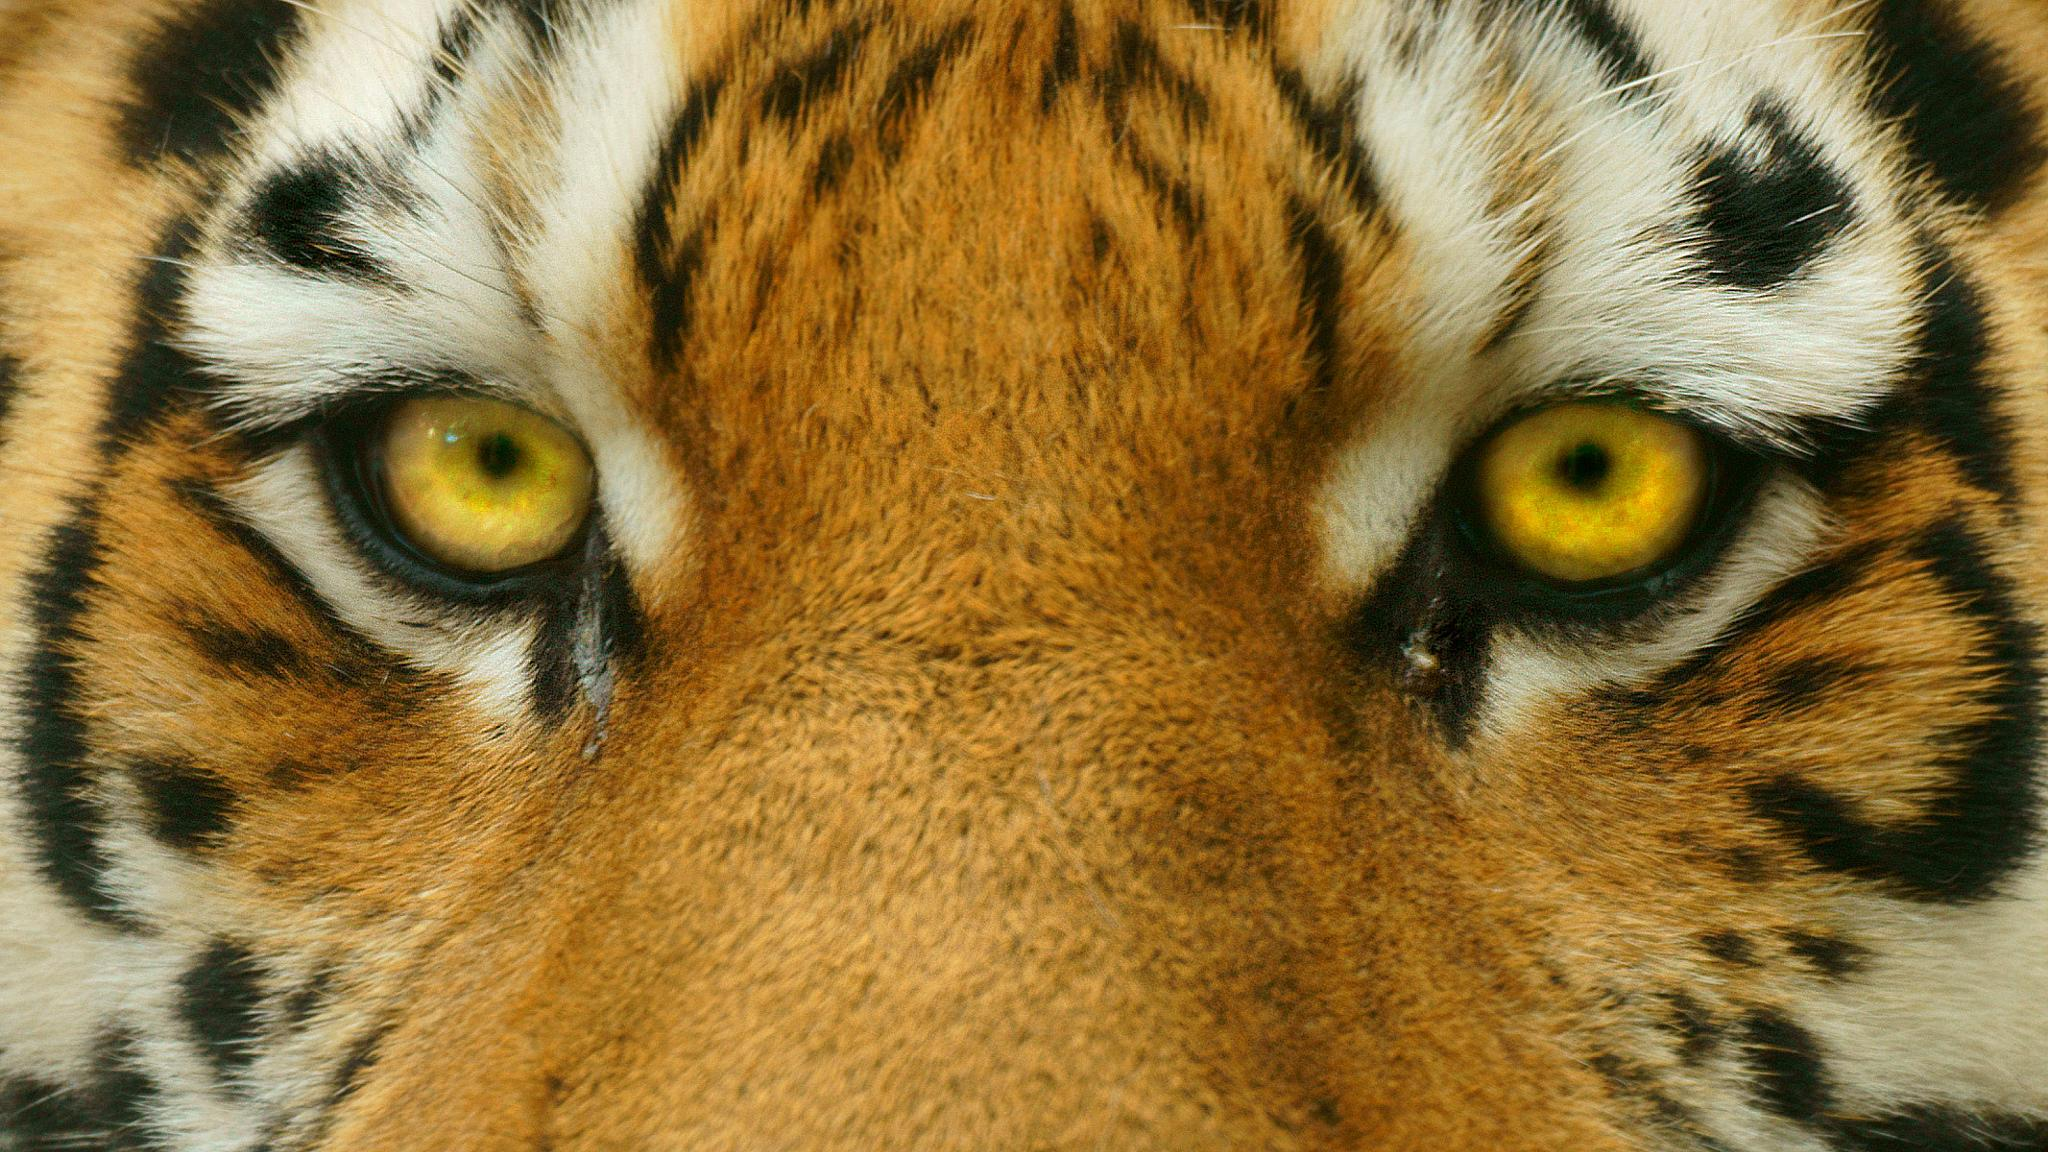 The Eyes of the Tiger by Matt H. Imaging